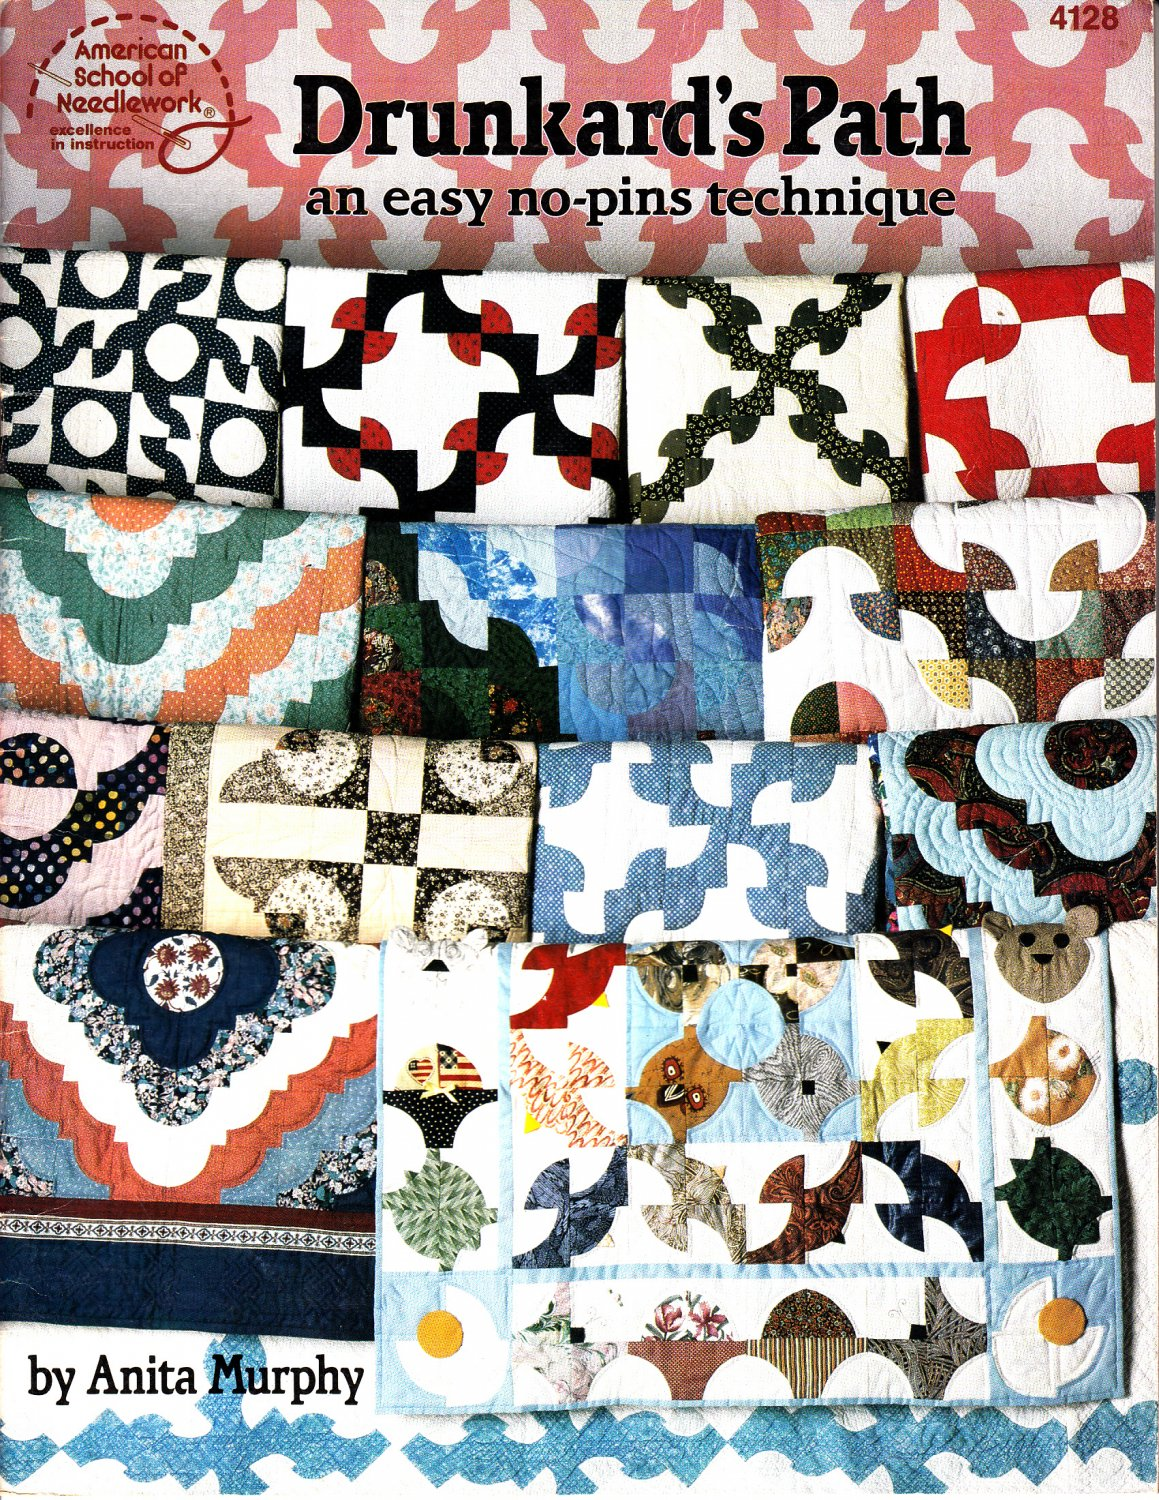 Drunkard's Path: An Easy No-Pins Technique by Anita Murphy (Quilting, 1991)